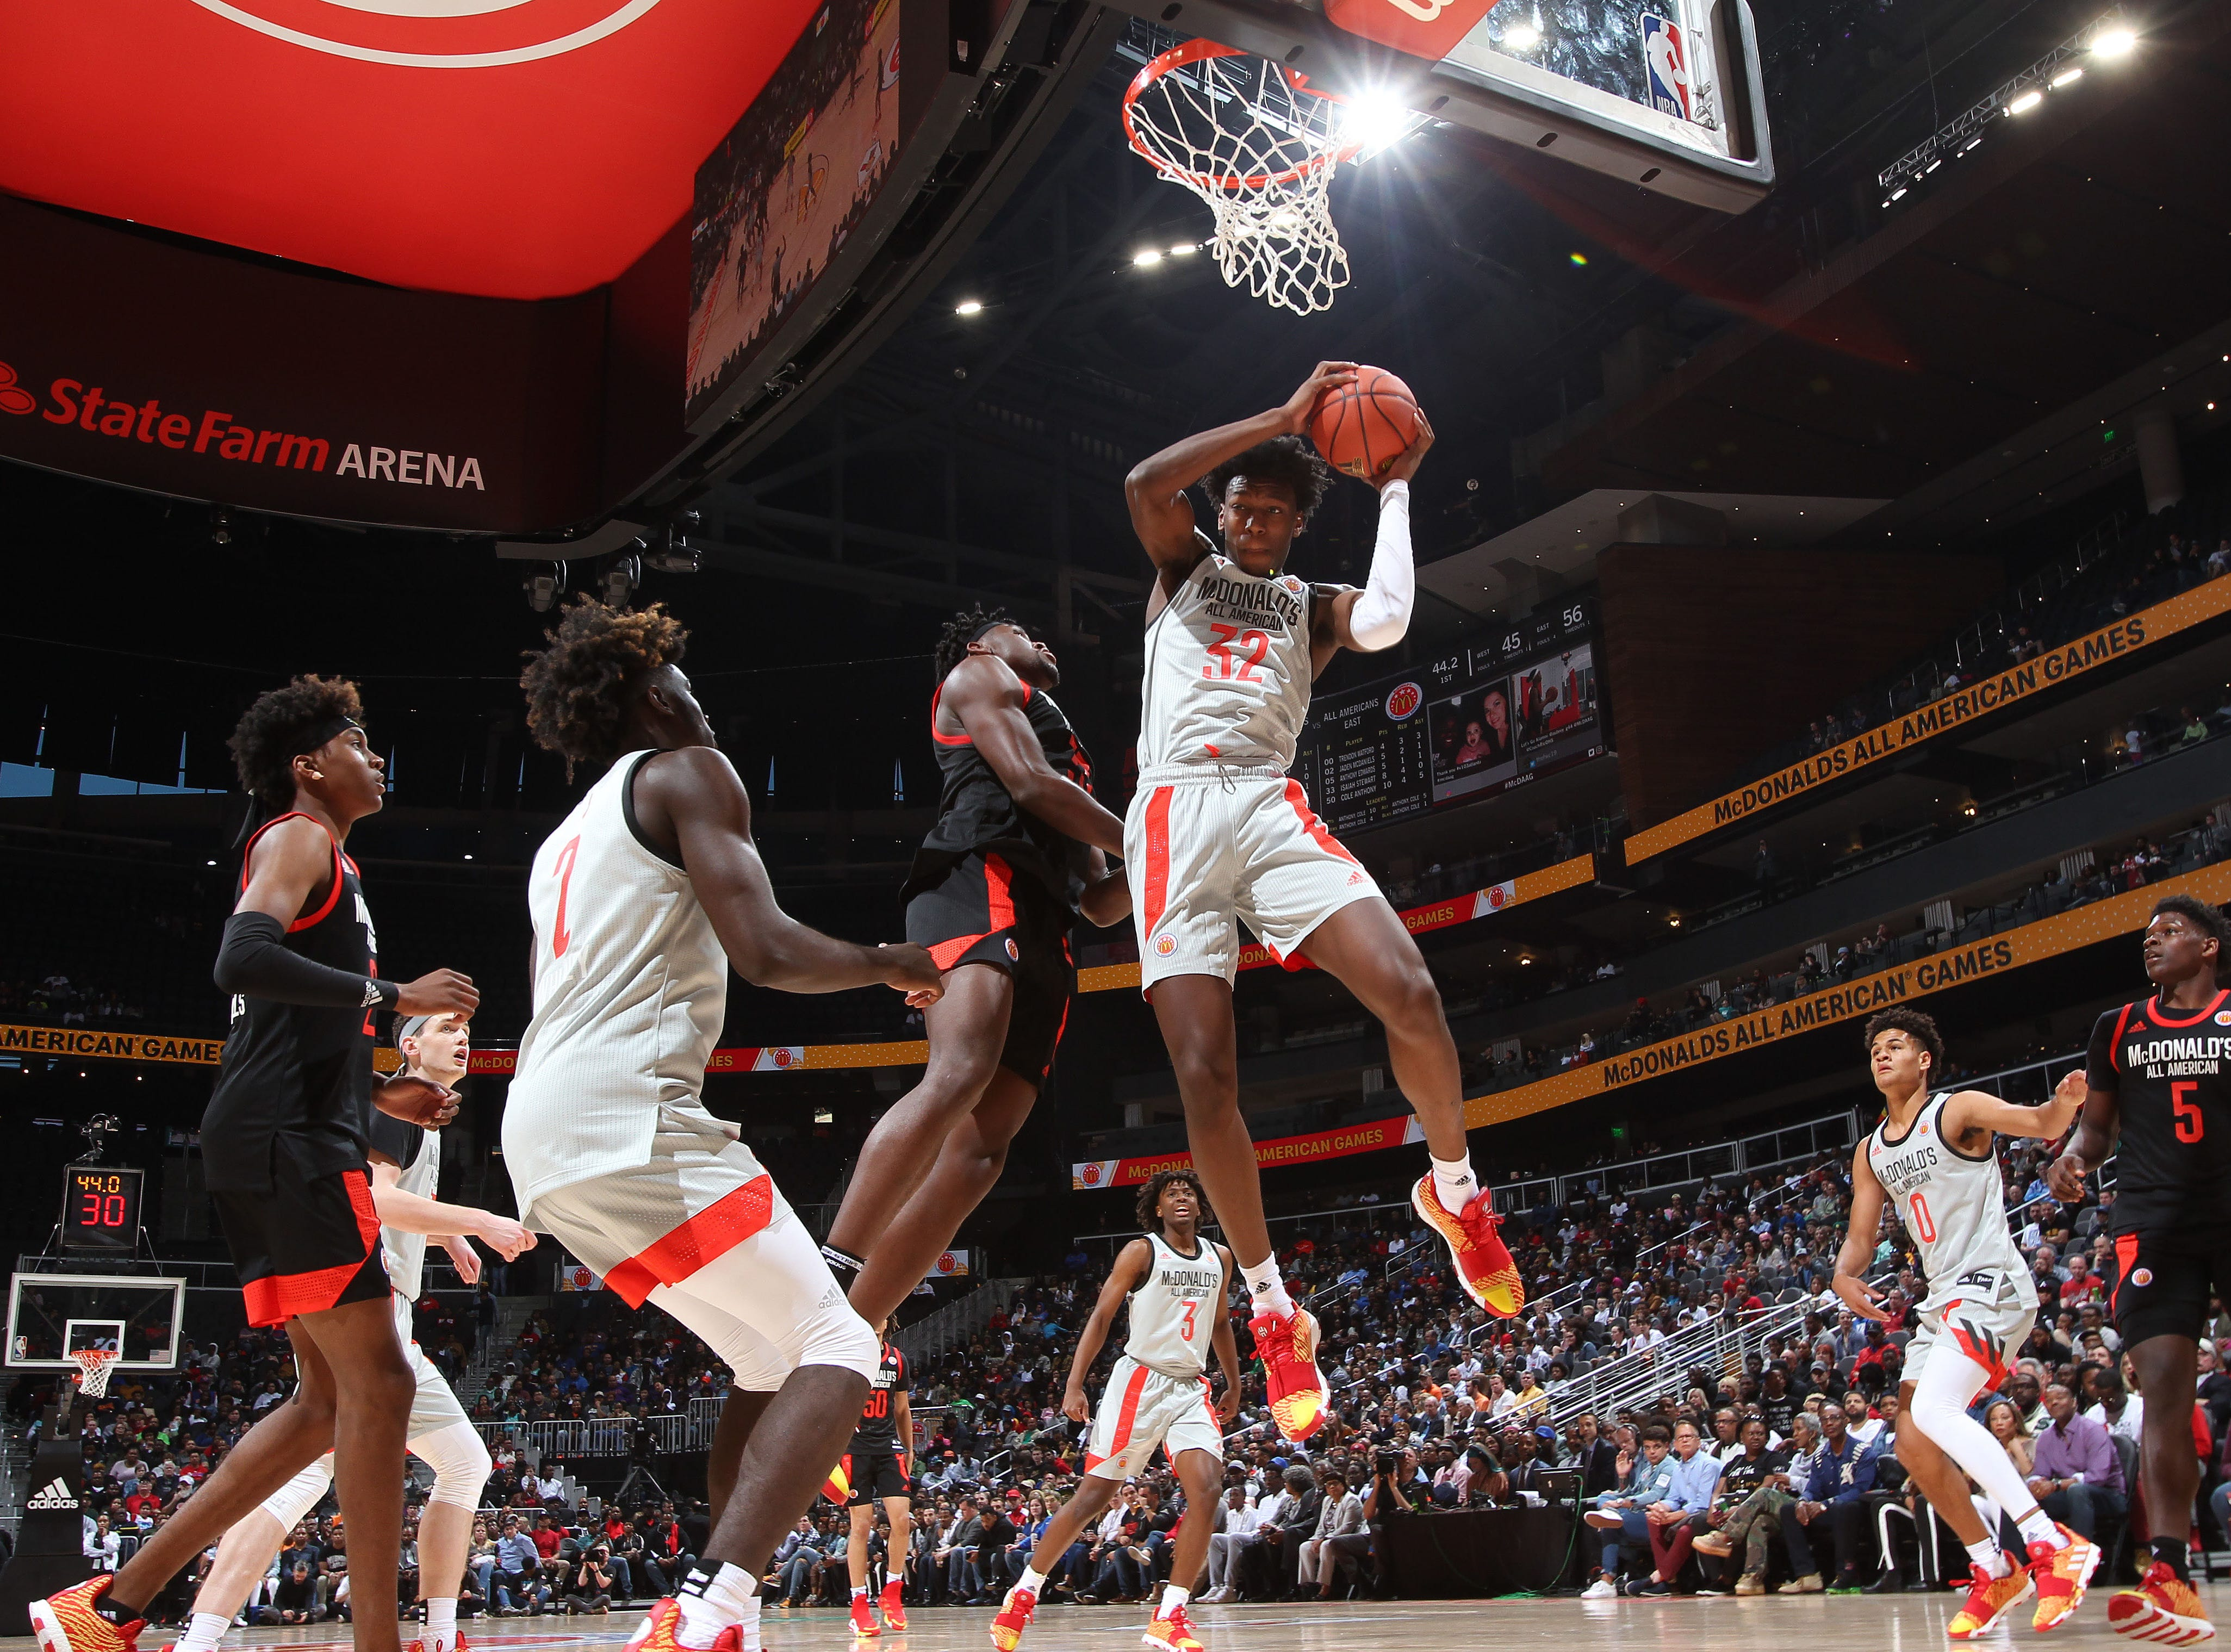 The West's James Wiseman (32) grabs a rebound during during the McDonald's  All-American Game in Atlanta on March 27, 2019.